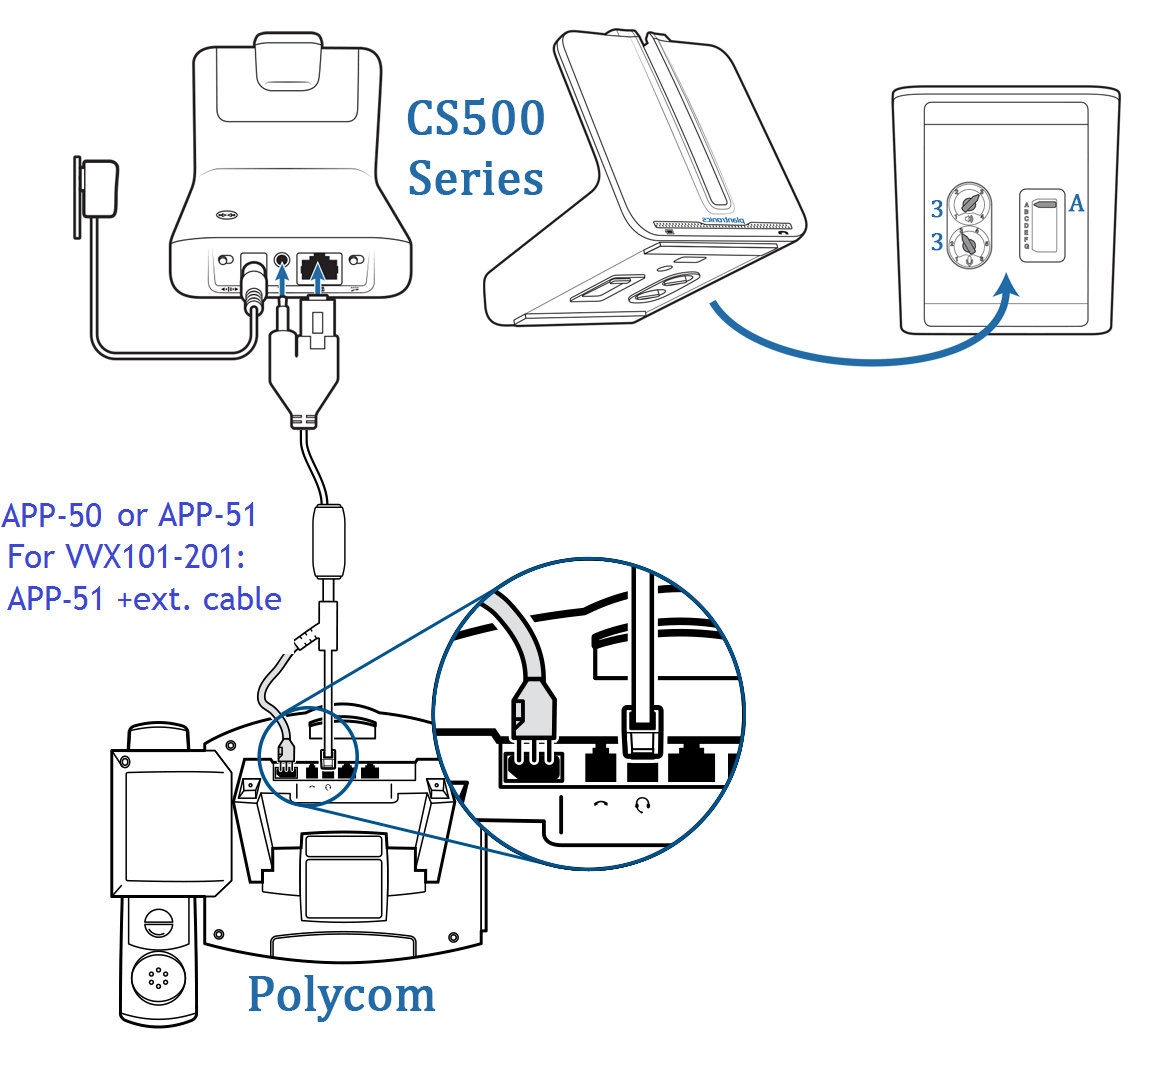 hight resolution of cs500series connection png